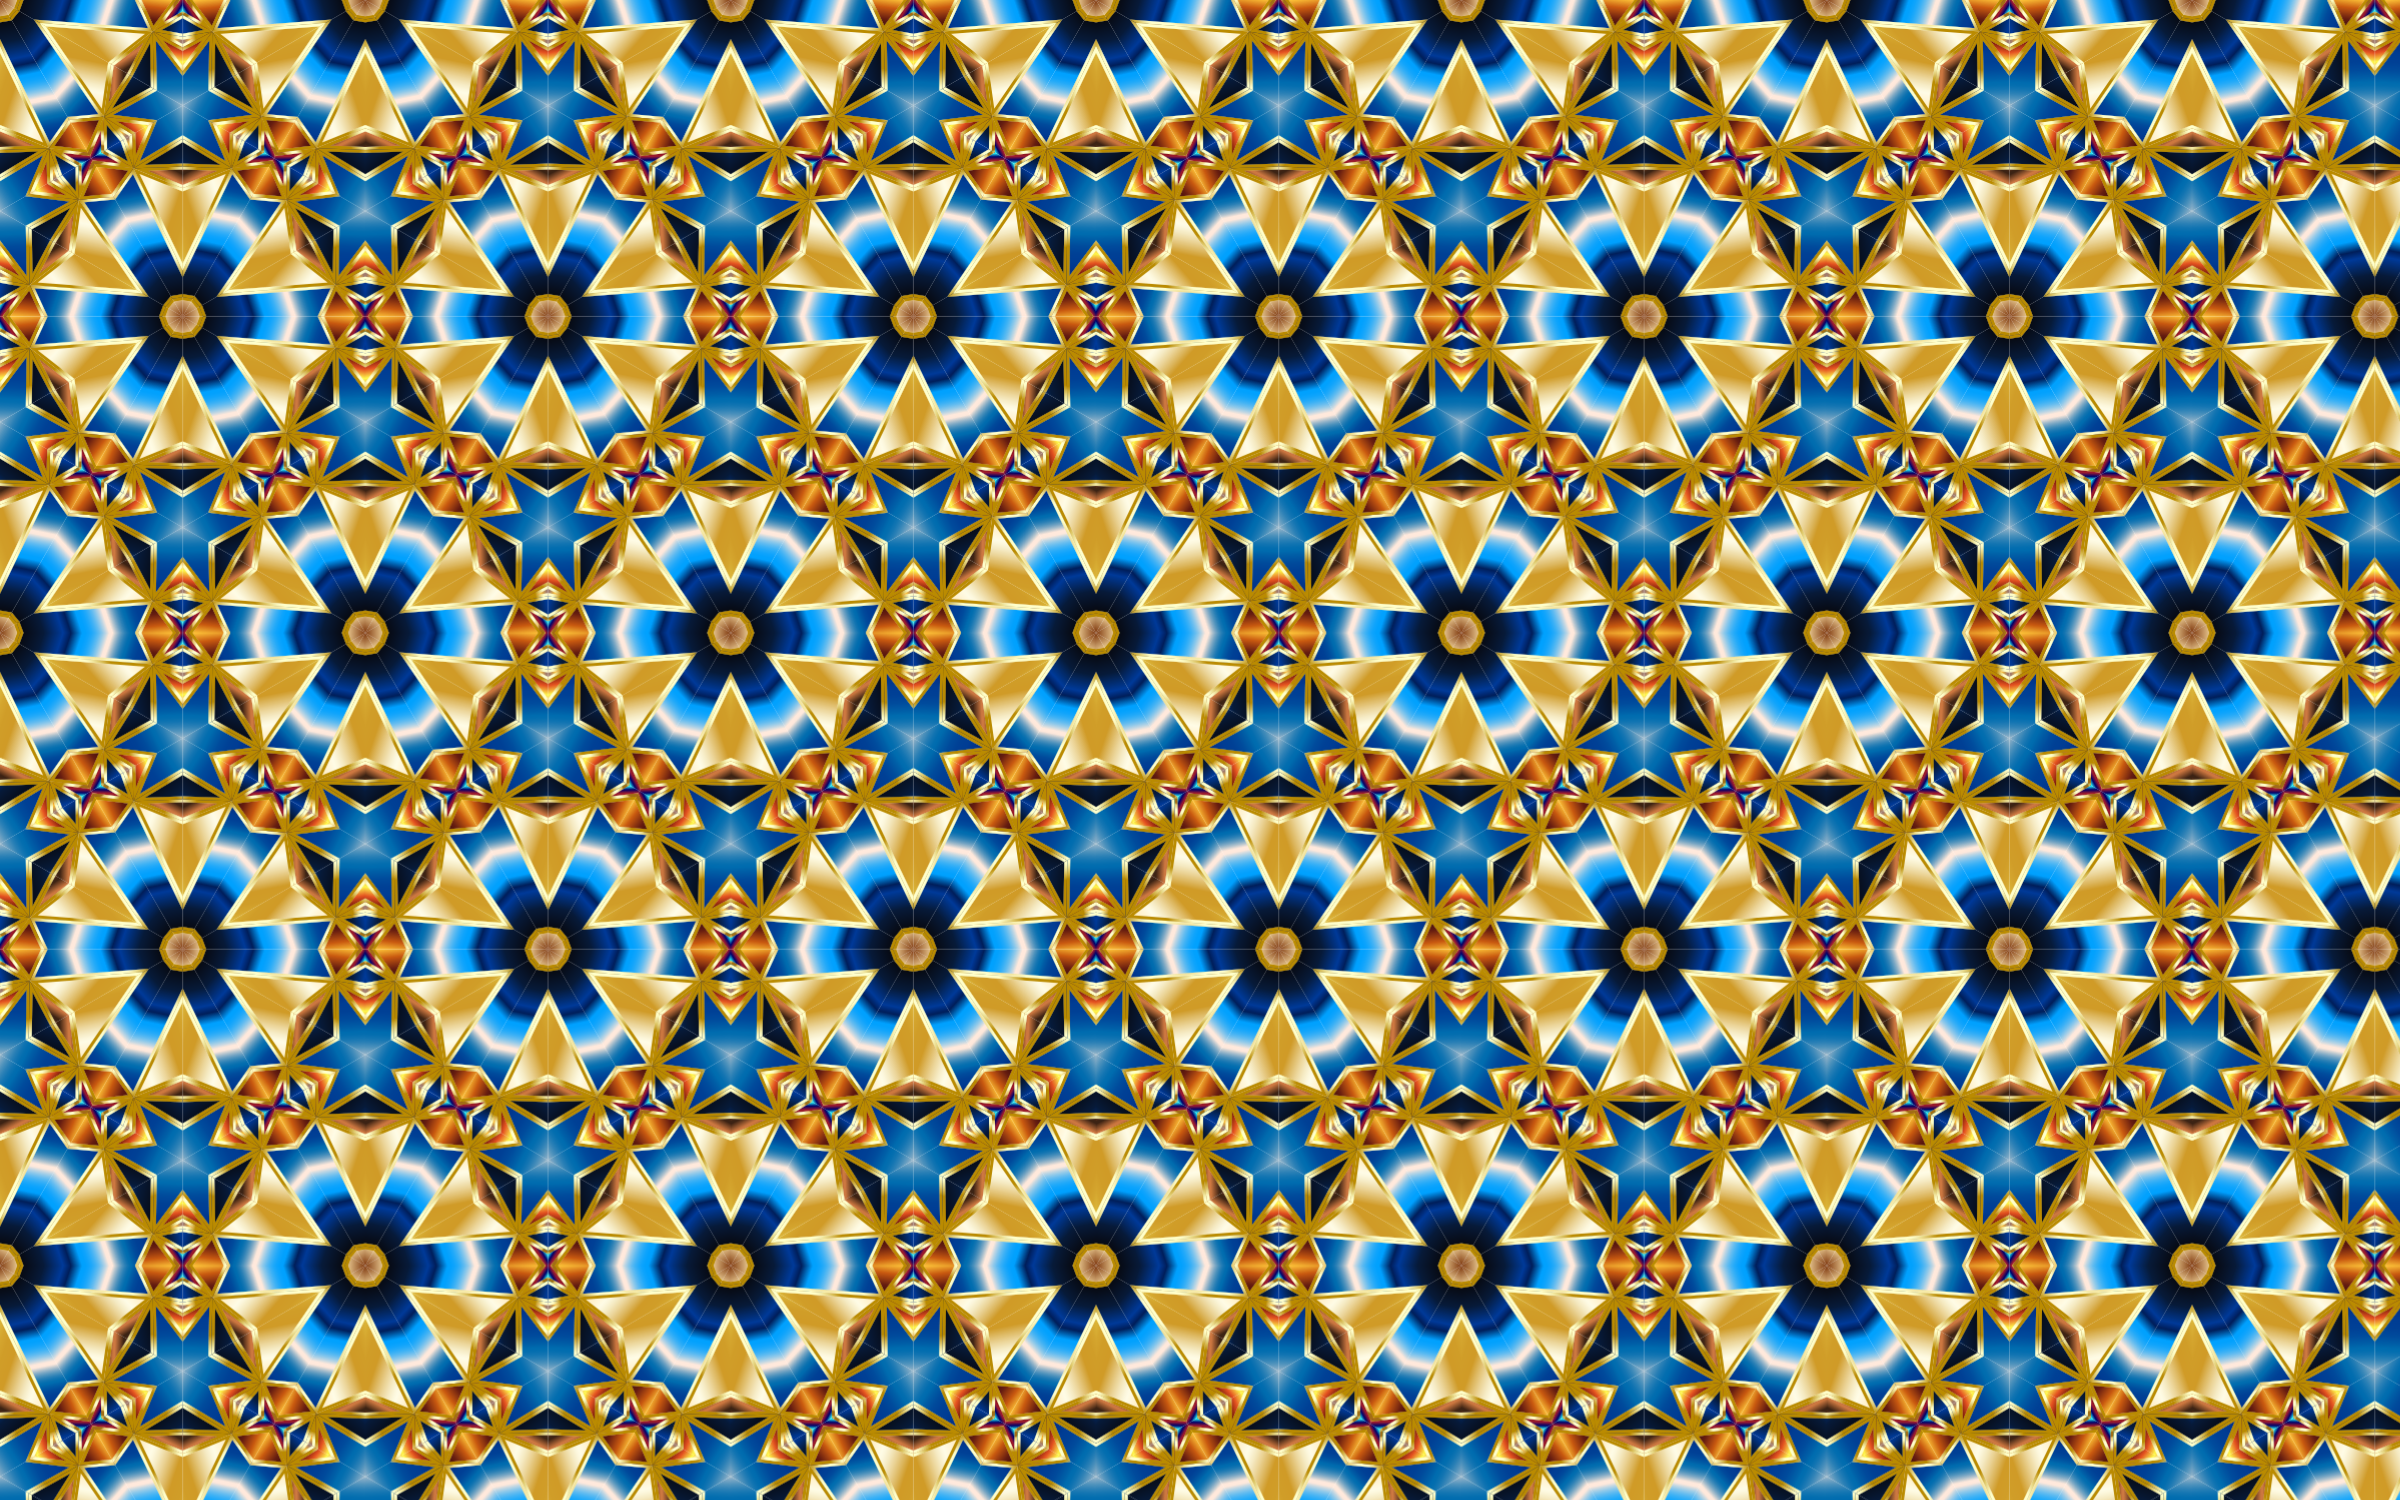 Seamless Pattern 136 by GDJ